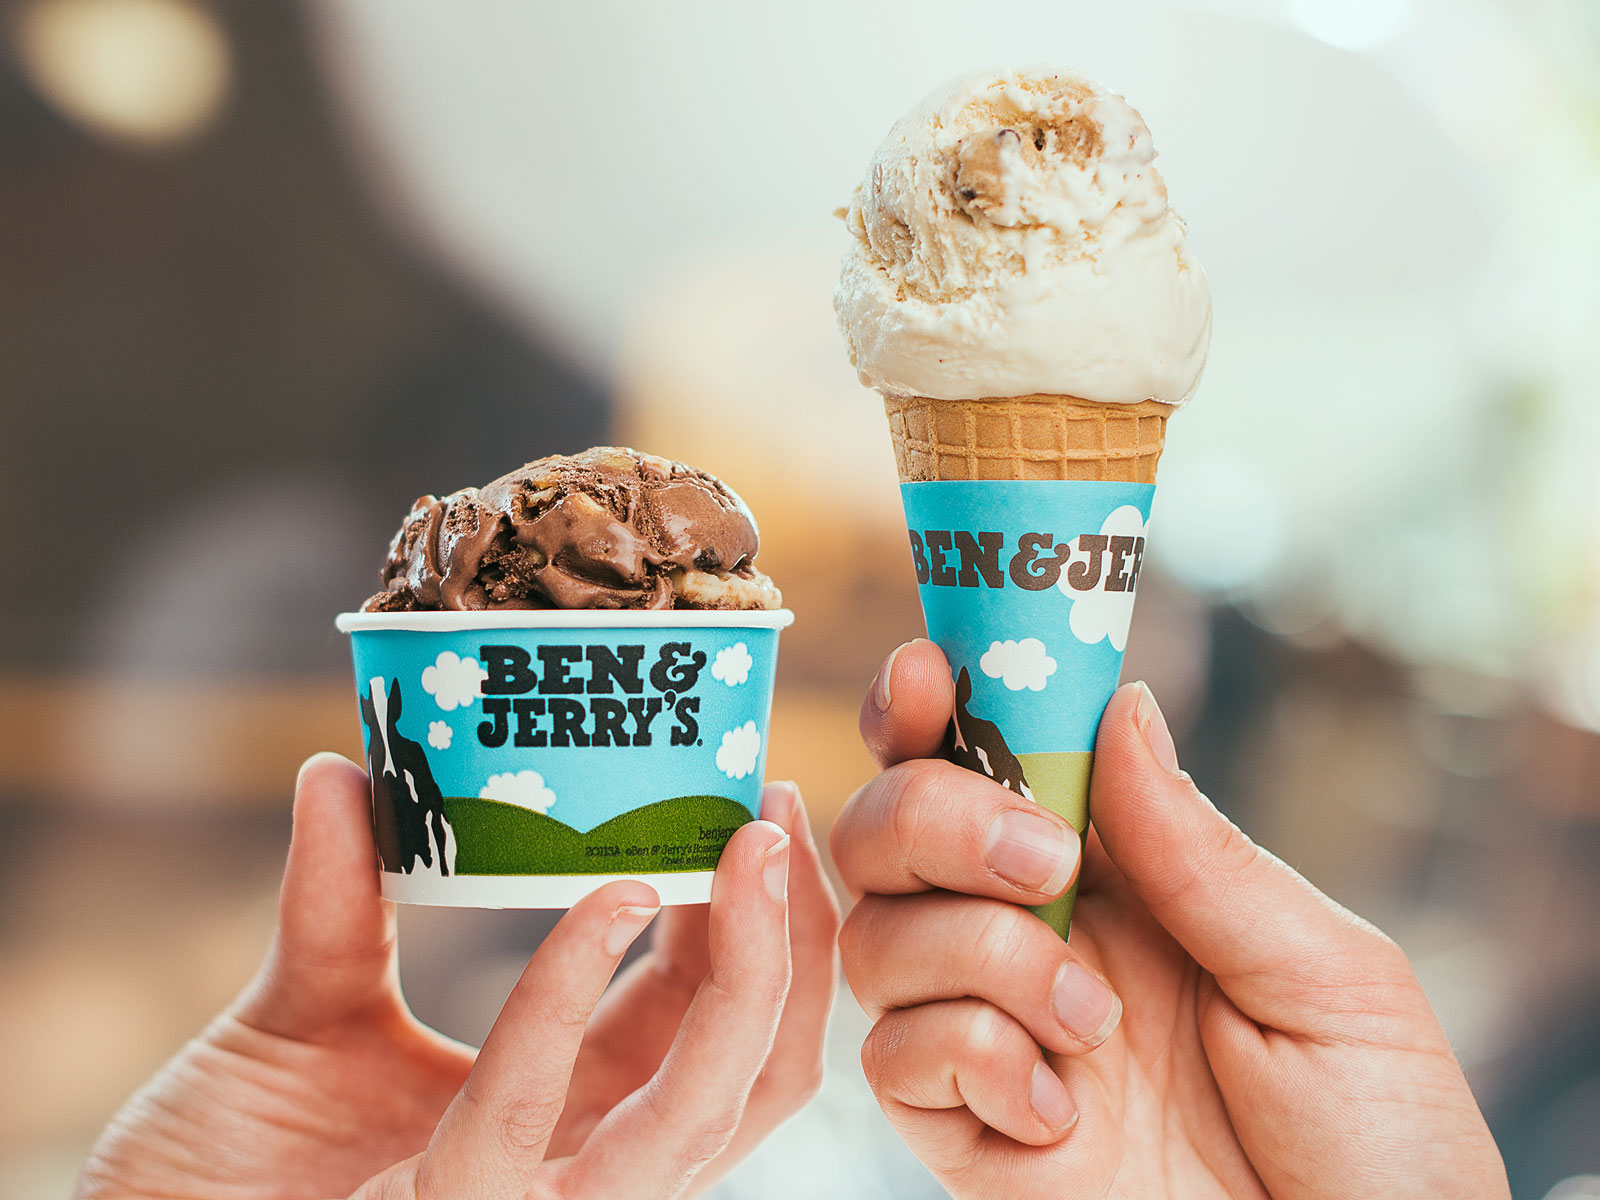 How to Get Free Ice Cream at Ben & Jerry's on Tuesday